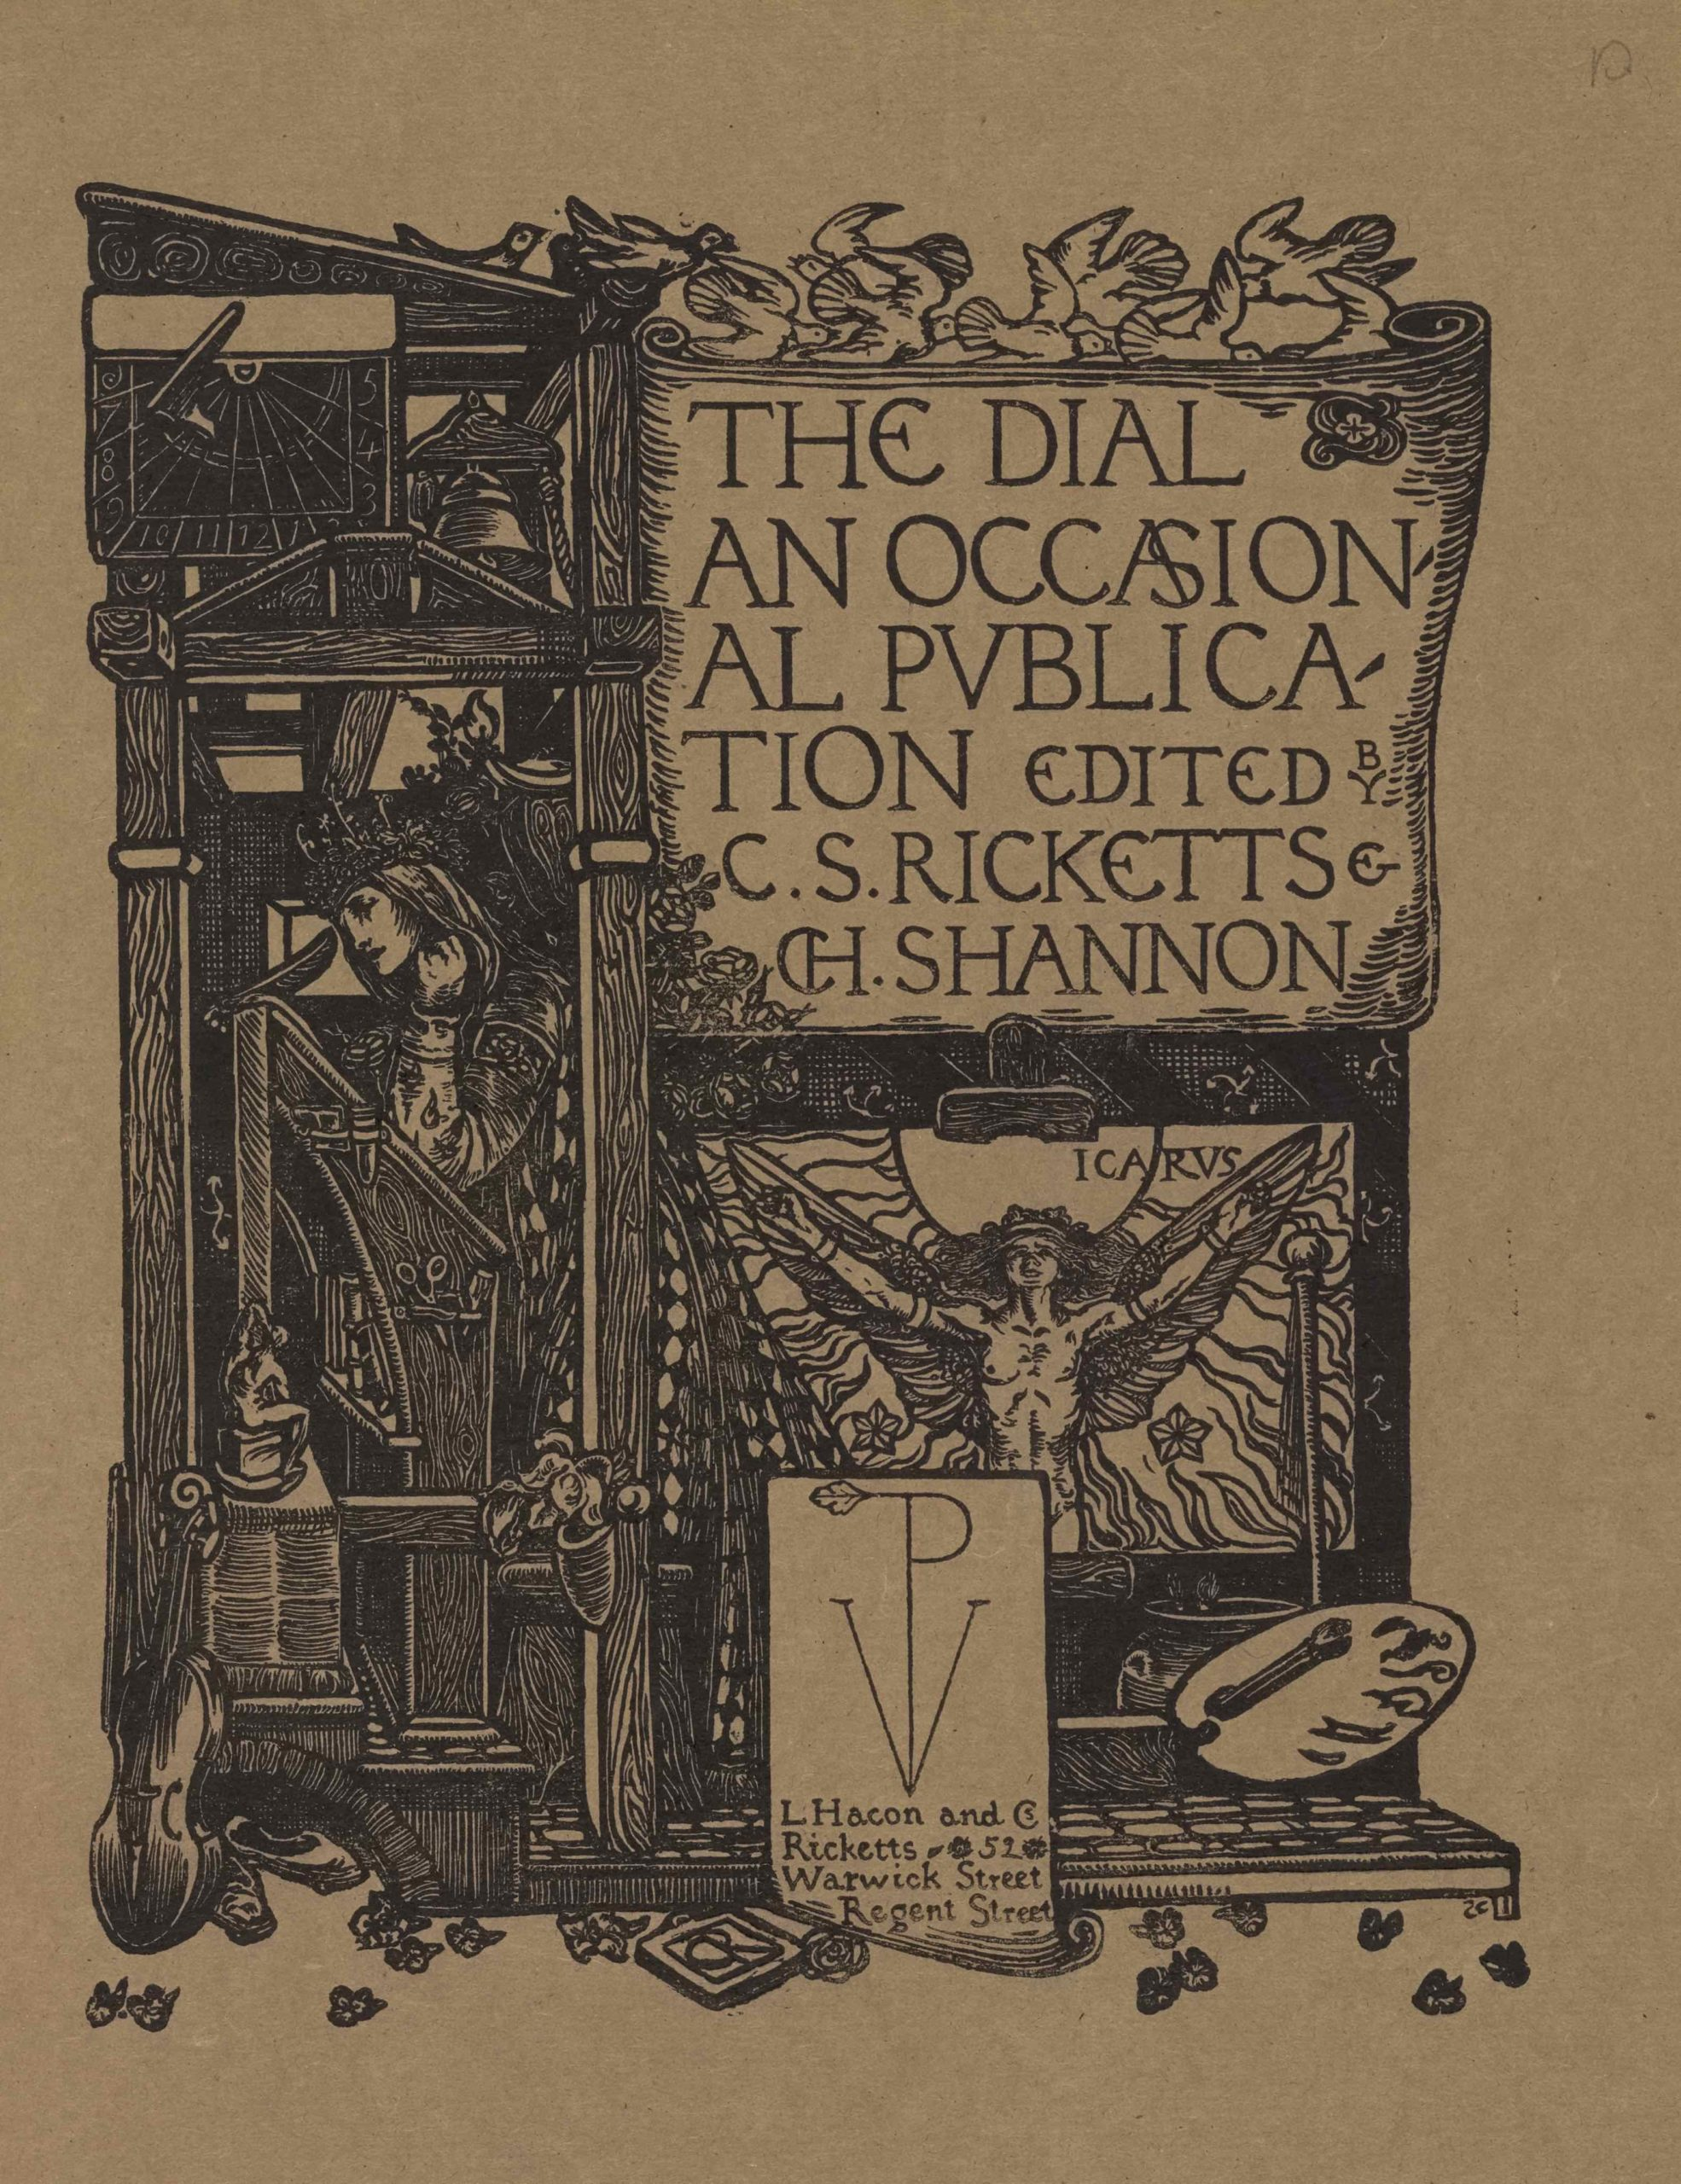 "The image is printed in black ink on buff coloured paper. It is centered in portrait orientation on the page. In the upper right region of the image, a large scroll or cartouche displaying the text ""The Dial: An Occasional Publication Edited by C.S. Ricketts and CH. Shannon"" in large capital letters is positioned on a tall structure made from wooden cross beams. Ten white doves appear to be flying above in both directions to land on the top beam of the structure. Below the large scroll is a sheaf of roses and a labelled image of Icarus, naked , with his arms outstretched beside him to hold up his wings. Icarus is standing in front of the sun and is surrounded by flames and various scattered flowers. A framed box is below the Icarus iconography displaying a stylized monogram of the capital letters ""VP."" The ""P,"" runs down the centre of the ""V,"" and has a leaf emerging from it on the left. Below the monogram is the publishing information: ""L. Hacon and CS Ricketts 52 Warwick Street Regent Street."" The artist's initials ""CR"" appear centered below the box, set within a book. To the right of this box is an artist's palette with one brush and a jar with two sprouting plants. In the upper left portion of the image, a sundial and a bell are displayed underneath the lectern-style roof of the structure on the left side, adjacent with the first two lines of text on the scroll. Below them is an open room built in the confines of the wooden cross beams. A woman with a crowned headpiece, long hair, and an ornamented robe, is standing in left profile in the open room. She appears to be leaning against a tall writing desk/prayer stand/ art desk, which is also depicted in profile. The woman's left arm is bent and rested on the desk and raised beneath her chin. Her right arm is rested up against the desk and she appears to be holding a quill pen with her right hand. The side of the desk contains artisanal instruments such as scissors and engravers. A small grotesque supports one of the legs of the desk at left. Below this pedestal is leaning a violin and a pair of slippers. Scattered across the whole bottom border of the image are leaves or flower petals."